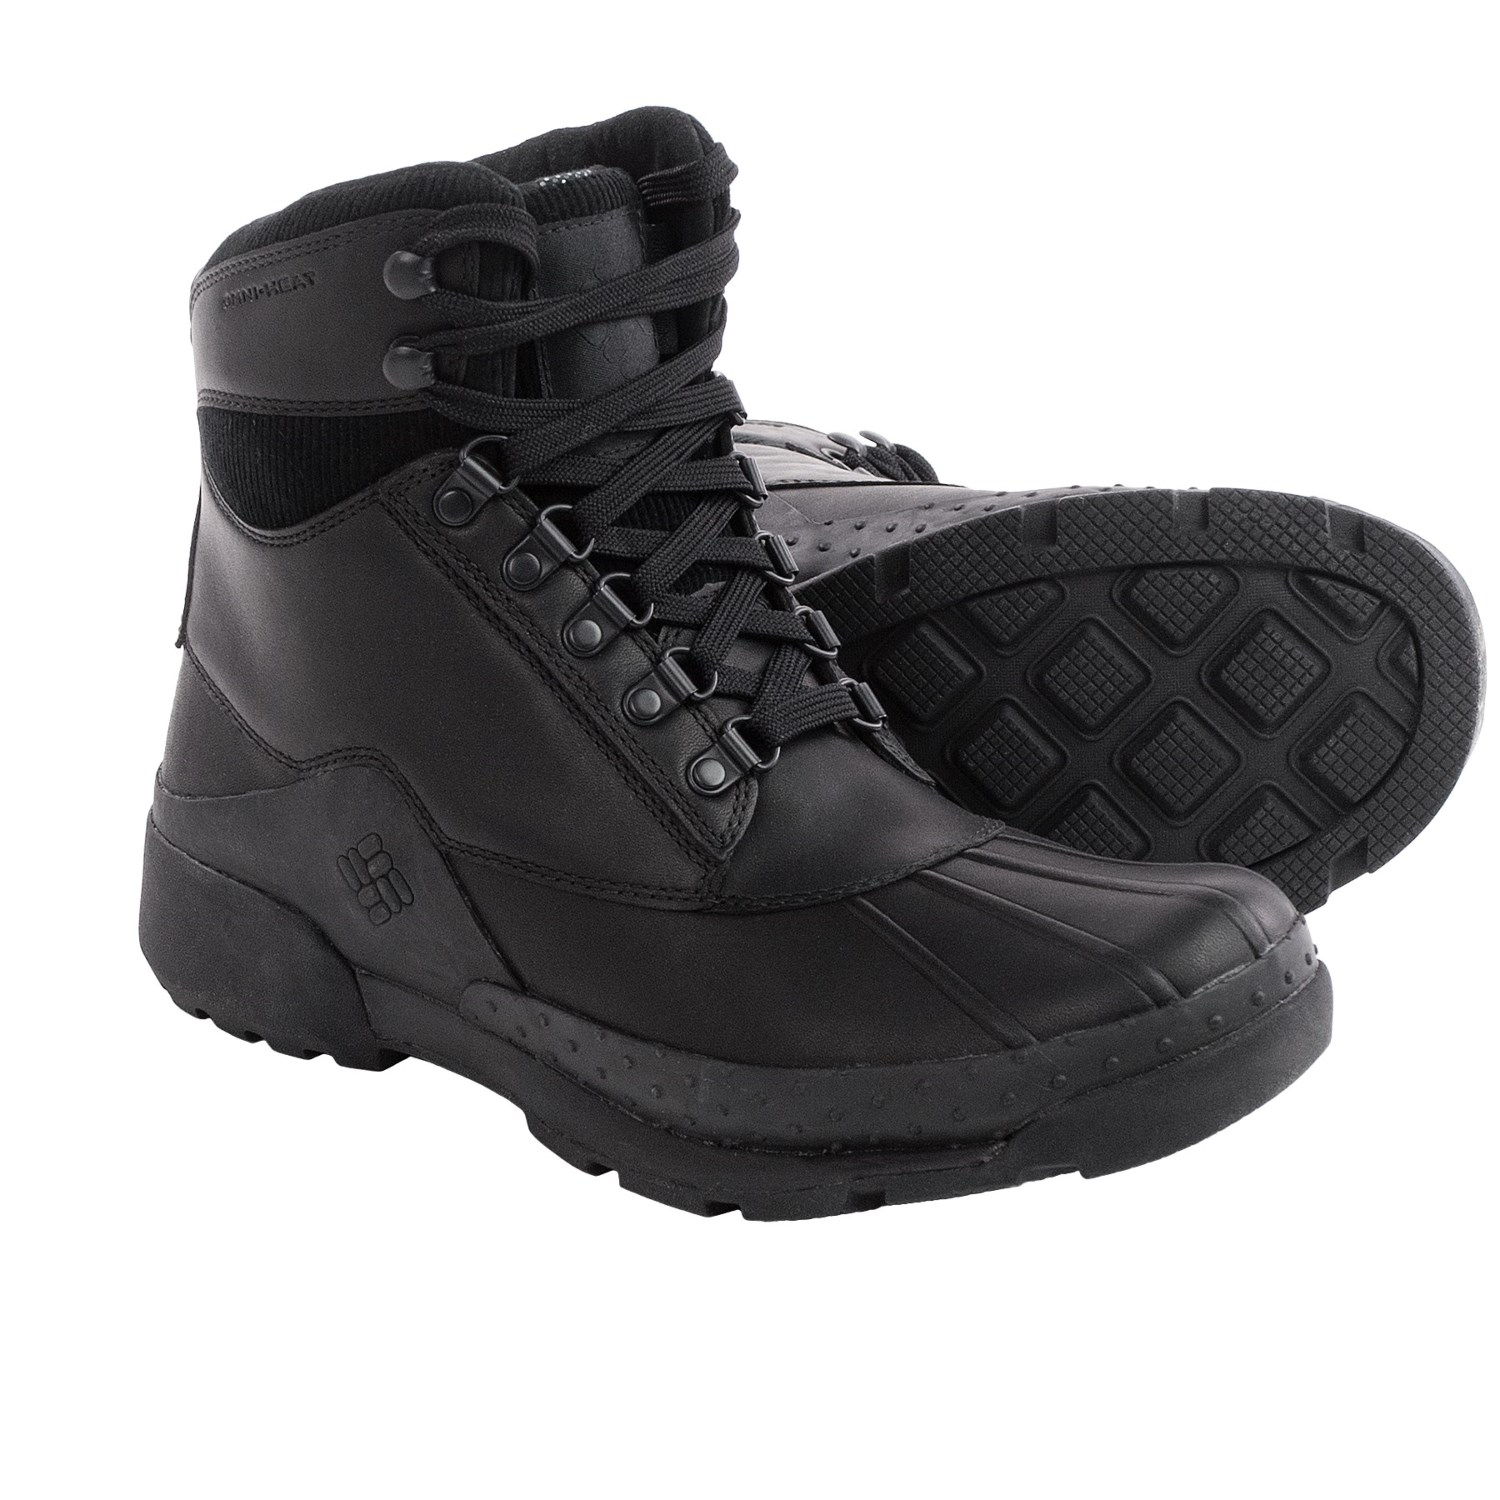 Mens Winter Boots Clearance hPx8kncQ